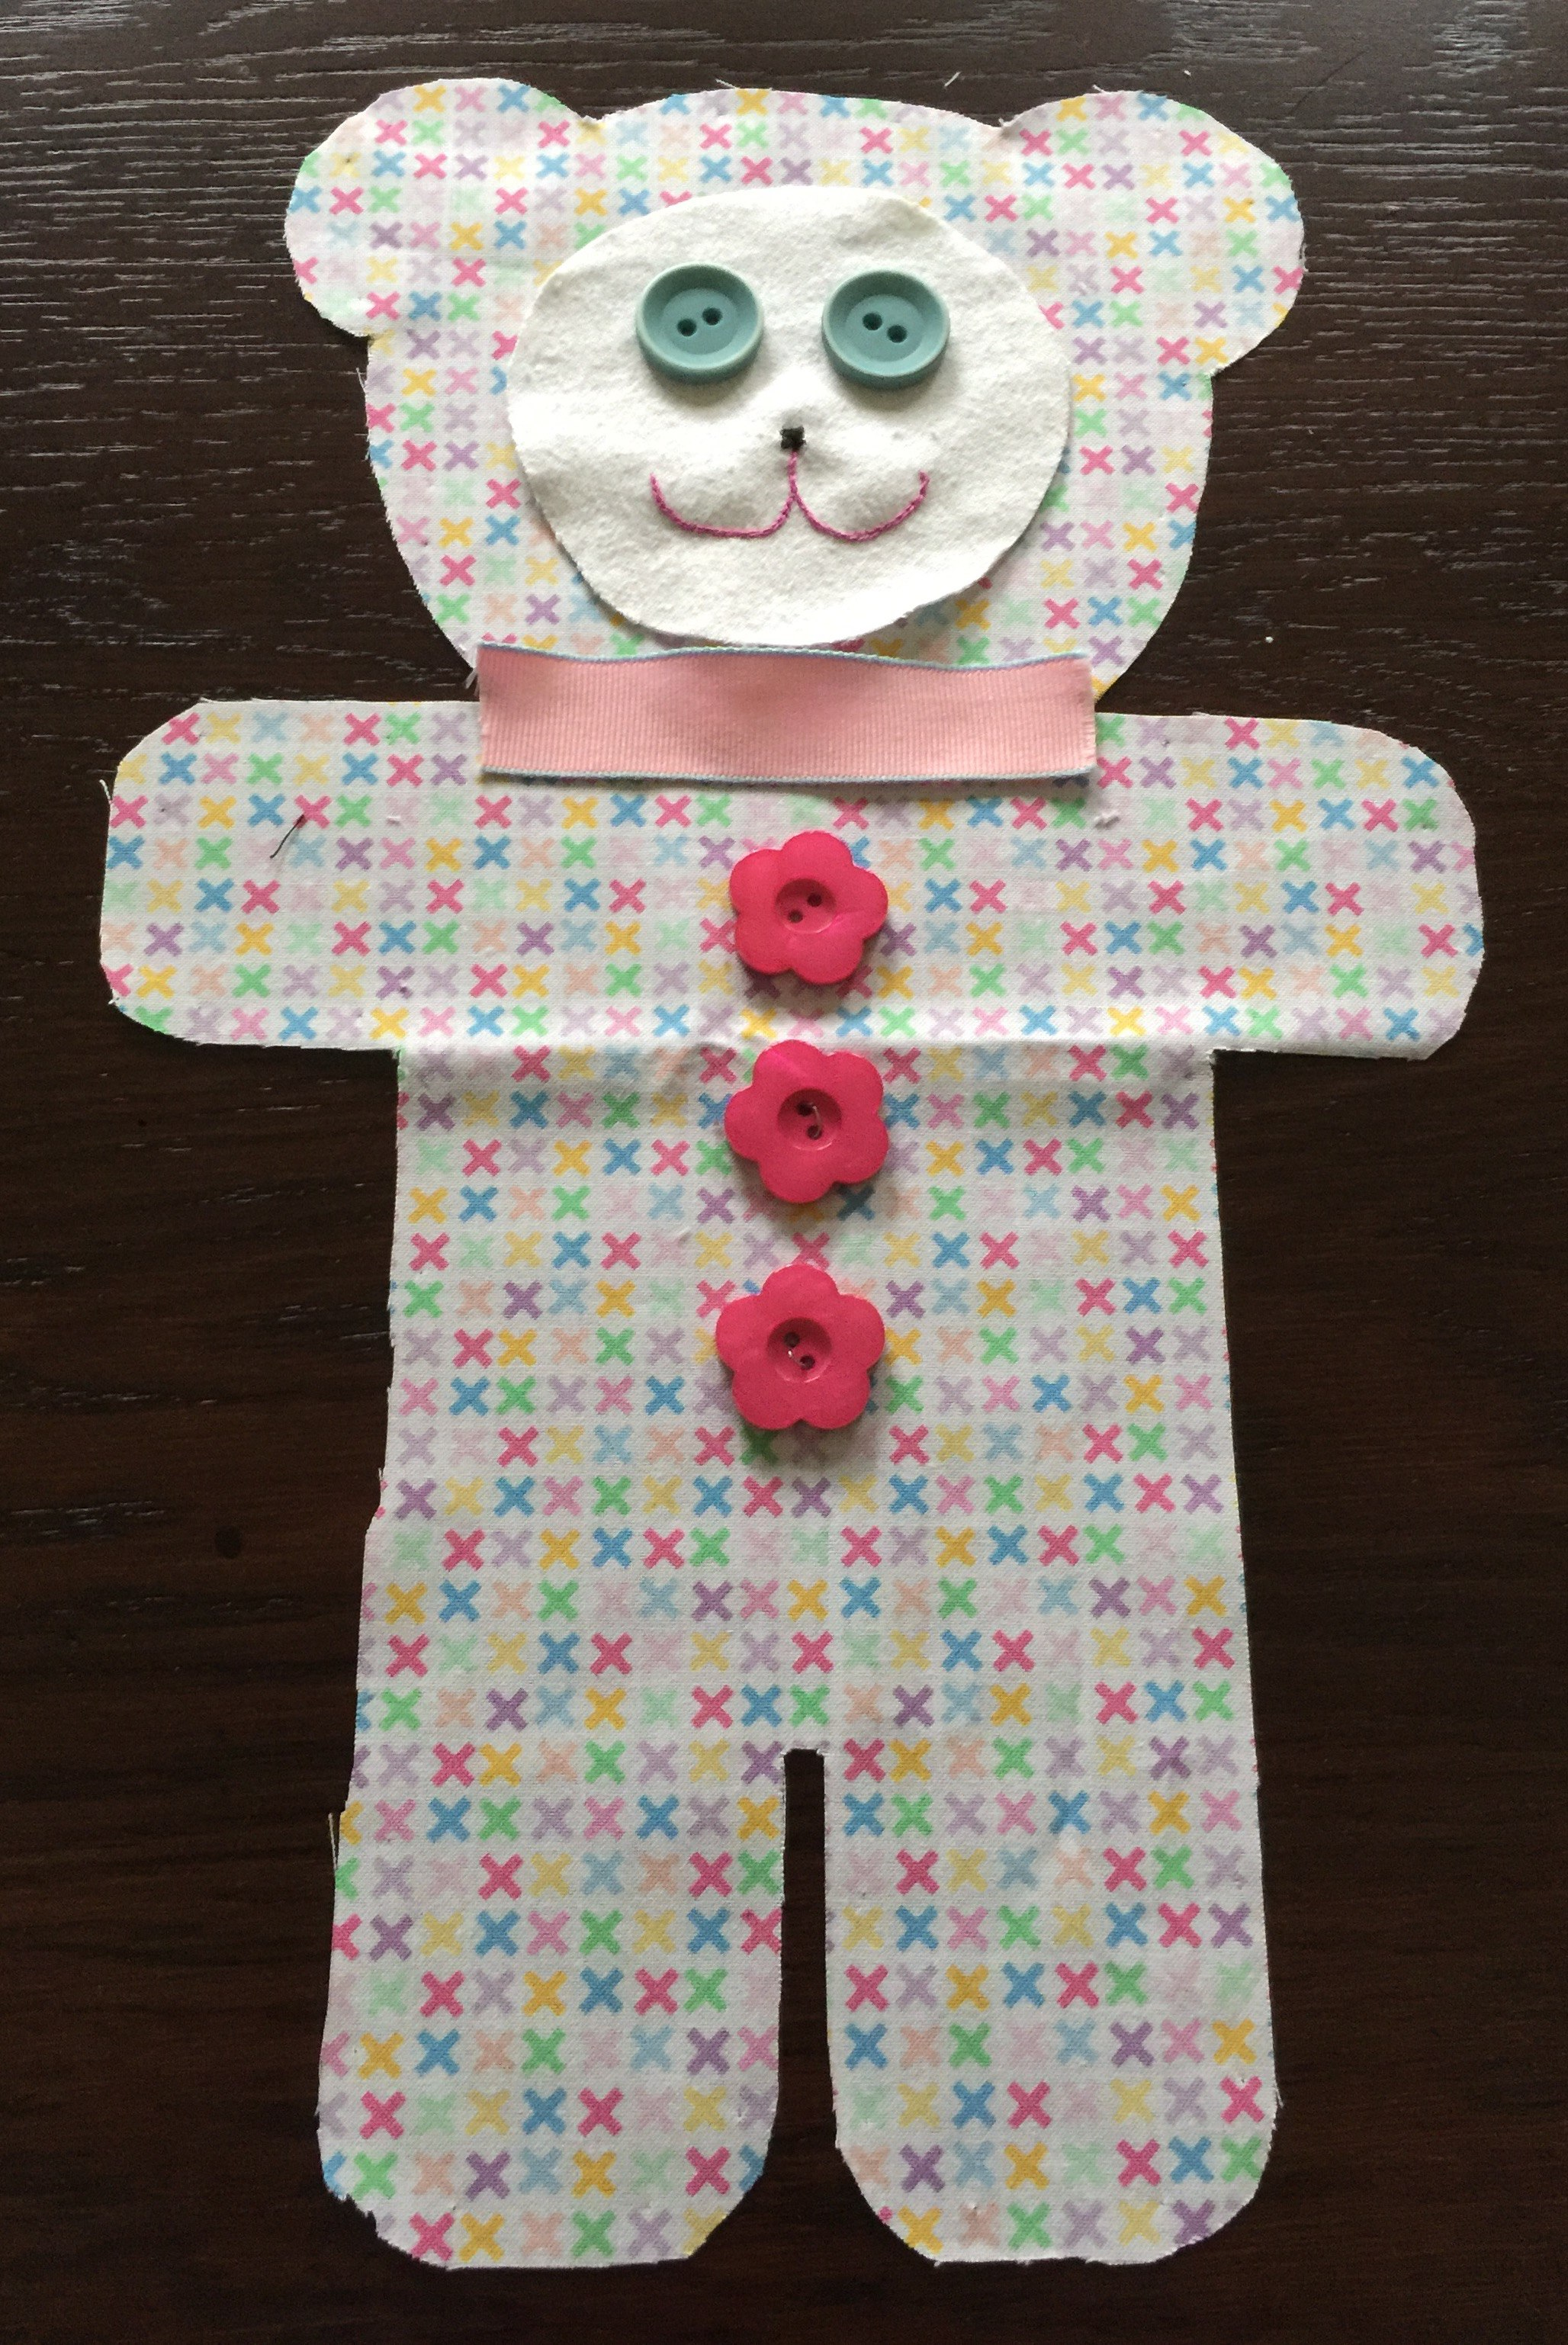 Teddy Bear with Pink Bow Tie